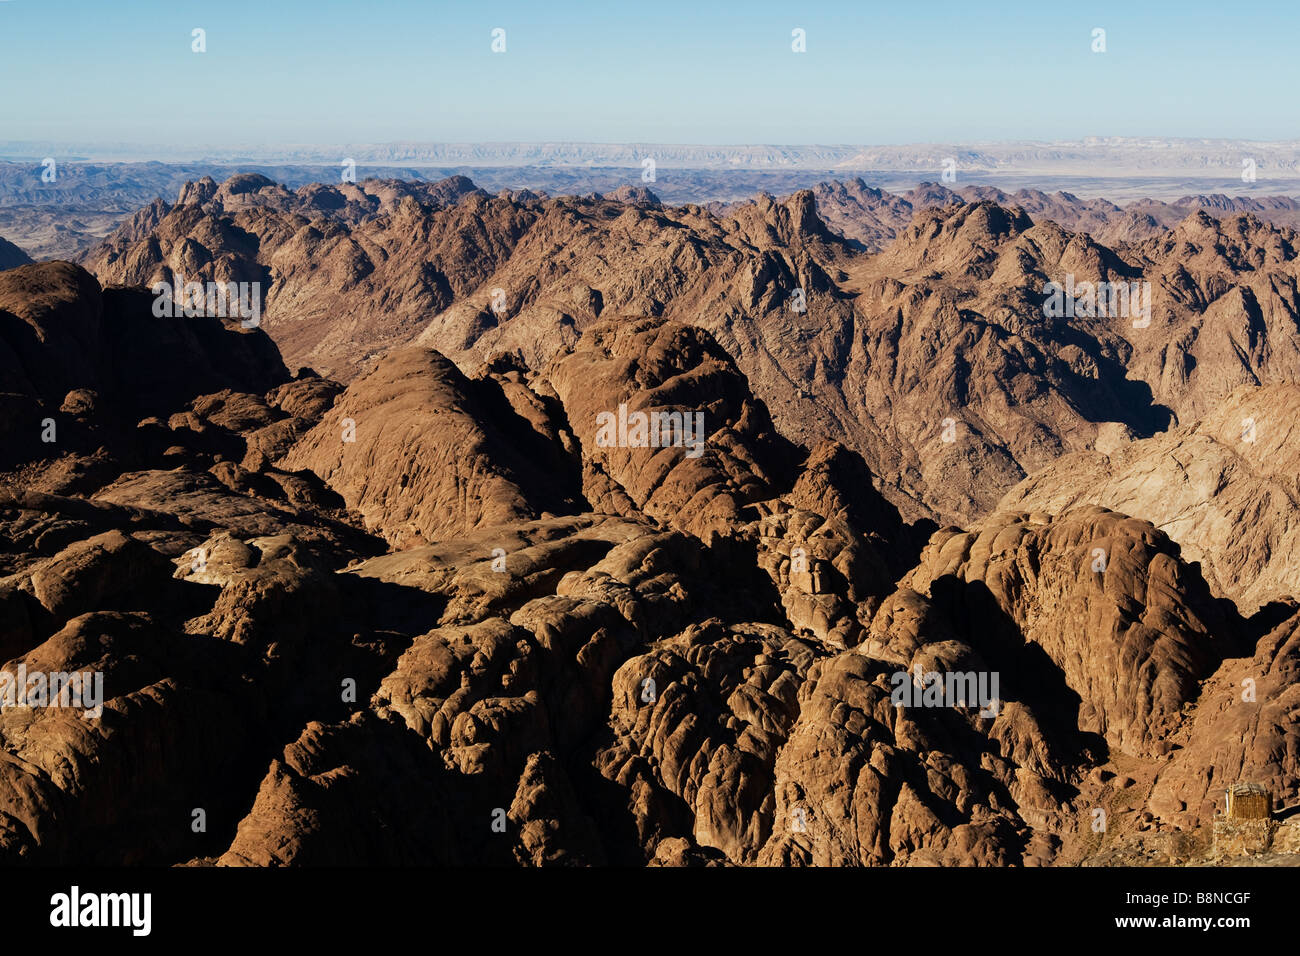 View from the summit of Mount Sinai 'the mount of God', Egypt - Stock Image